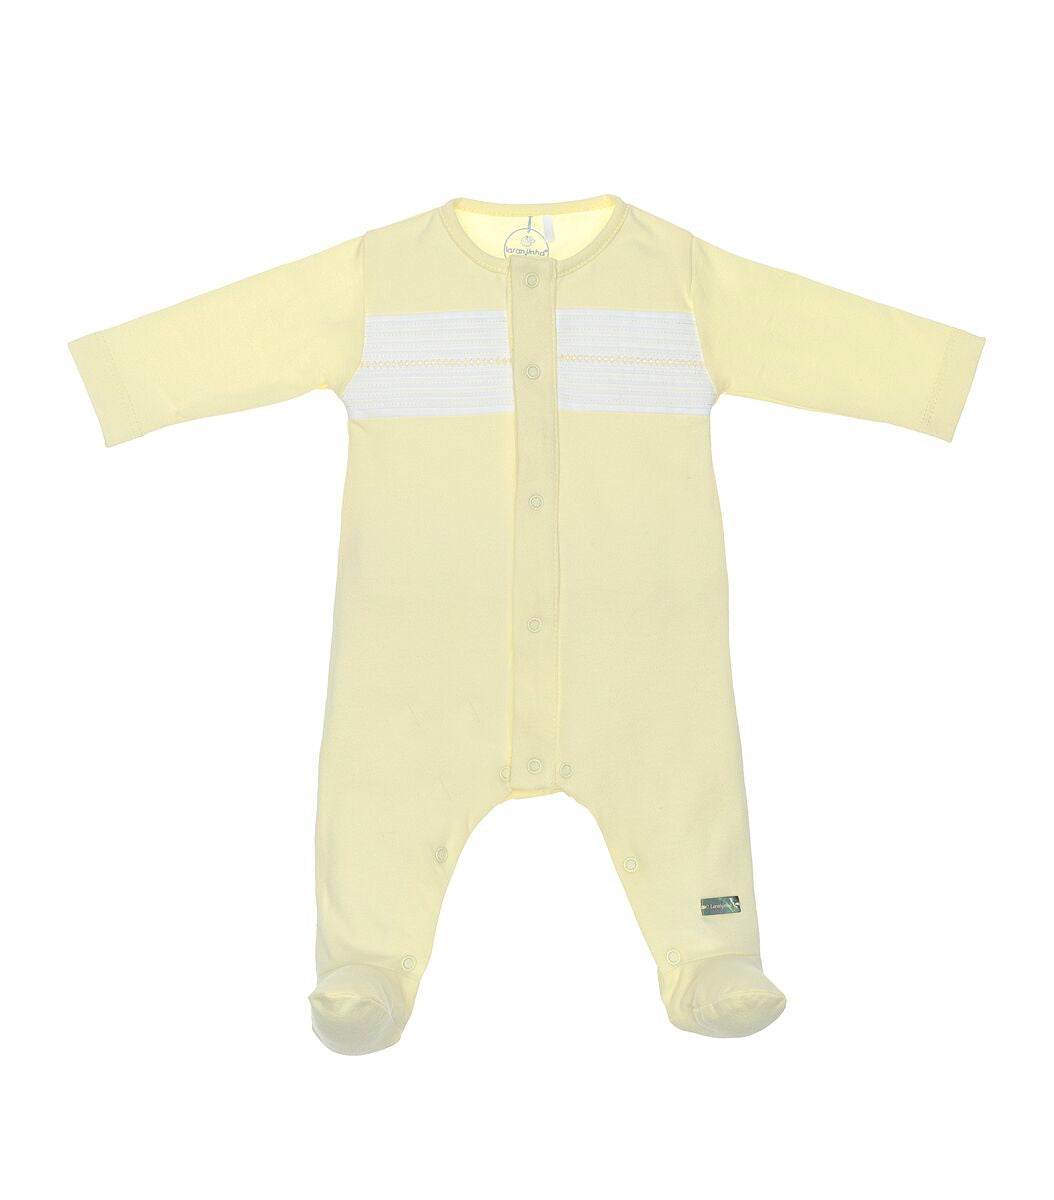 Laranjinha #31 Babygrow *Available in Baby Pink / Blue*